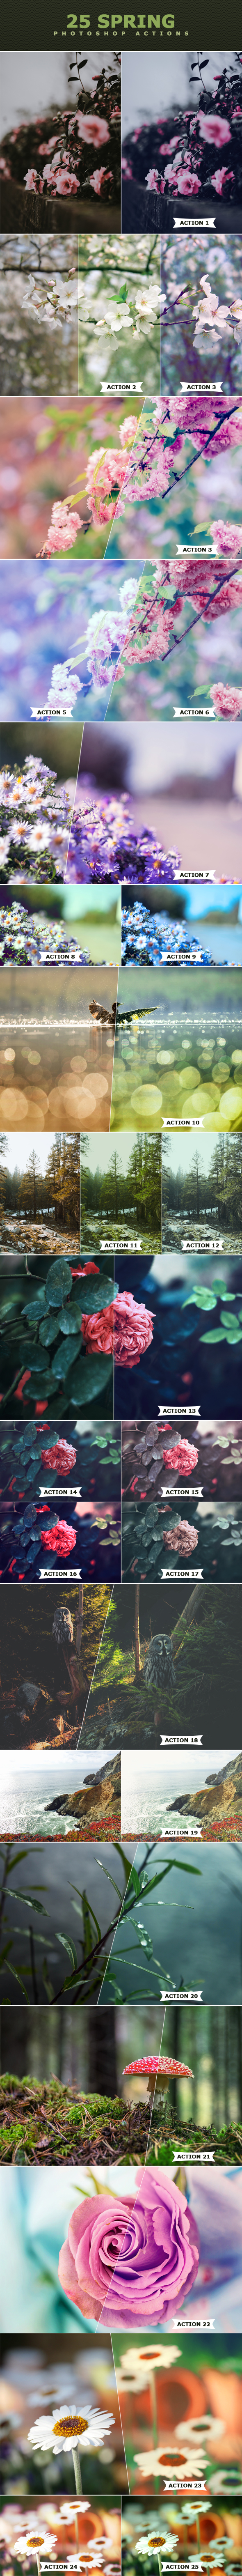 25 Spring Photoshop Actions - Photo Effects Actions